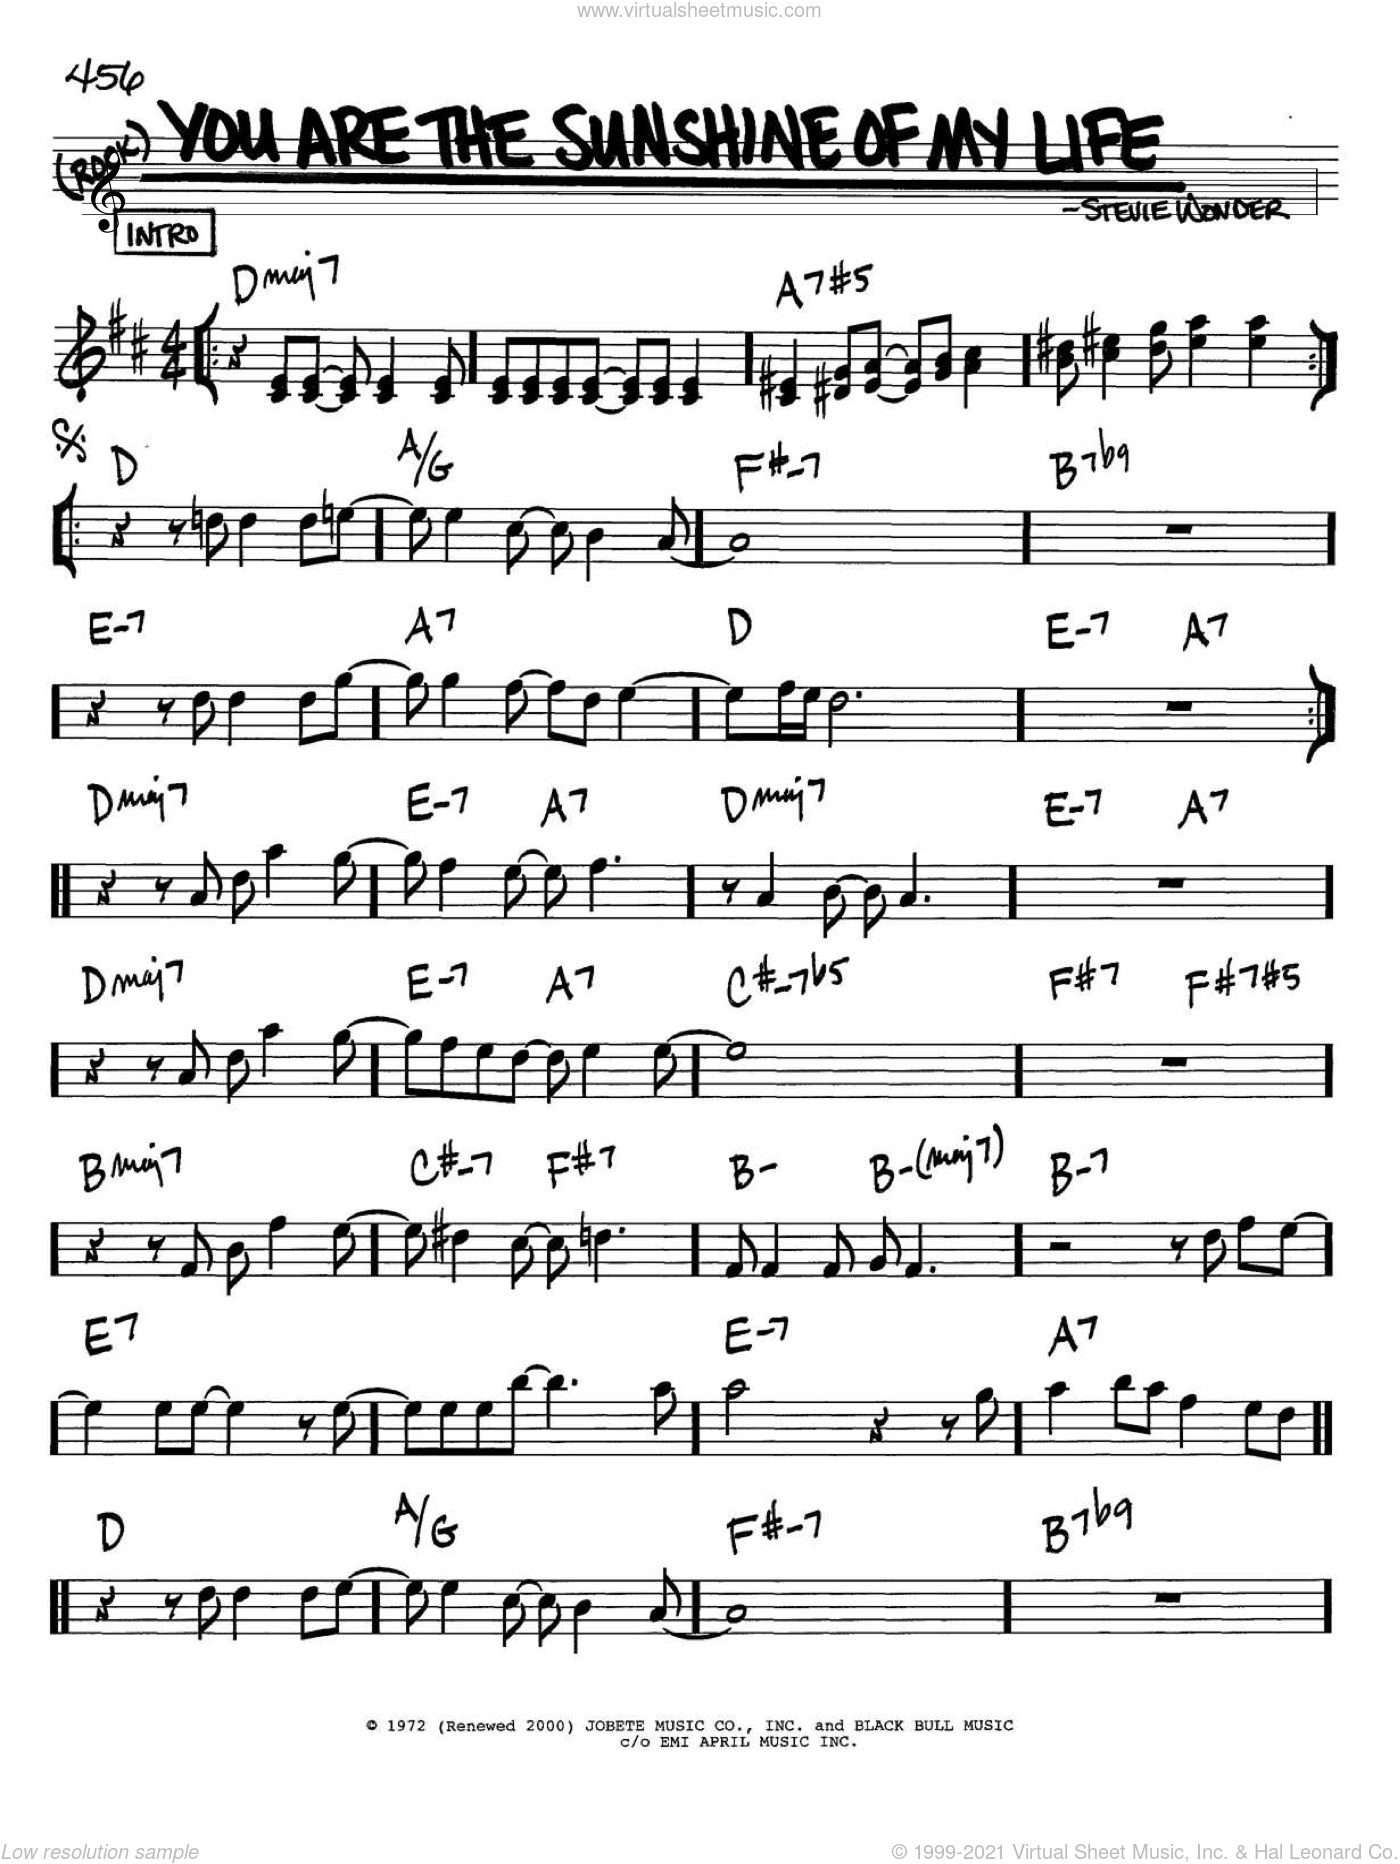 You Are The Sunshine Of My Life sheet music for voice and other instruments (in Bb) by Stevie Wonder, intermediate skill level